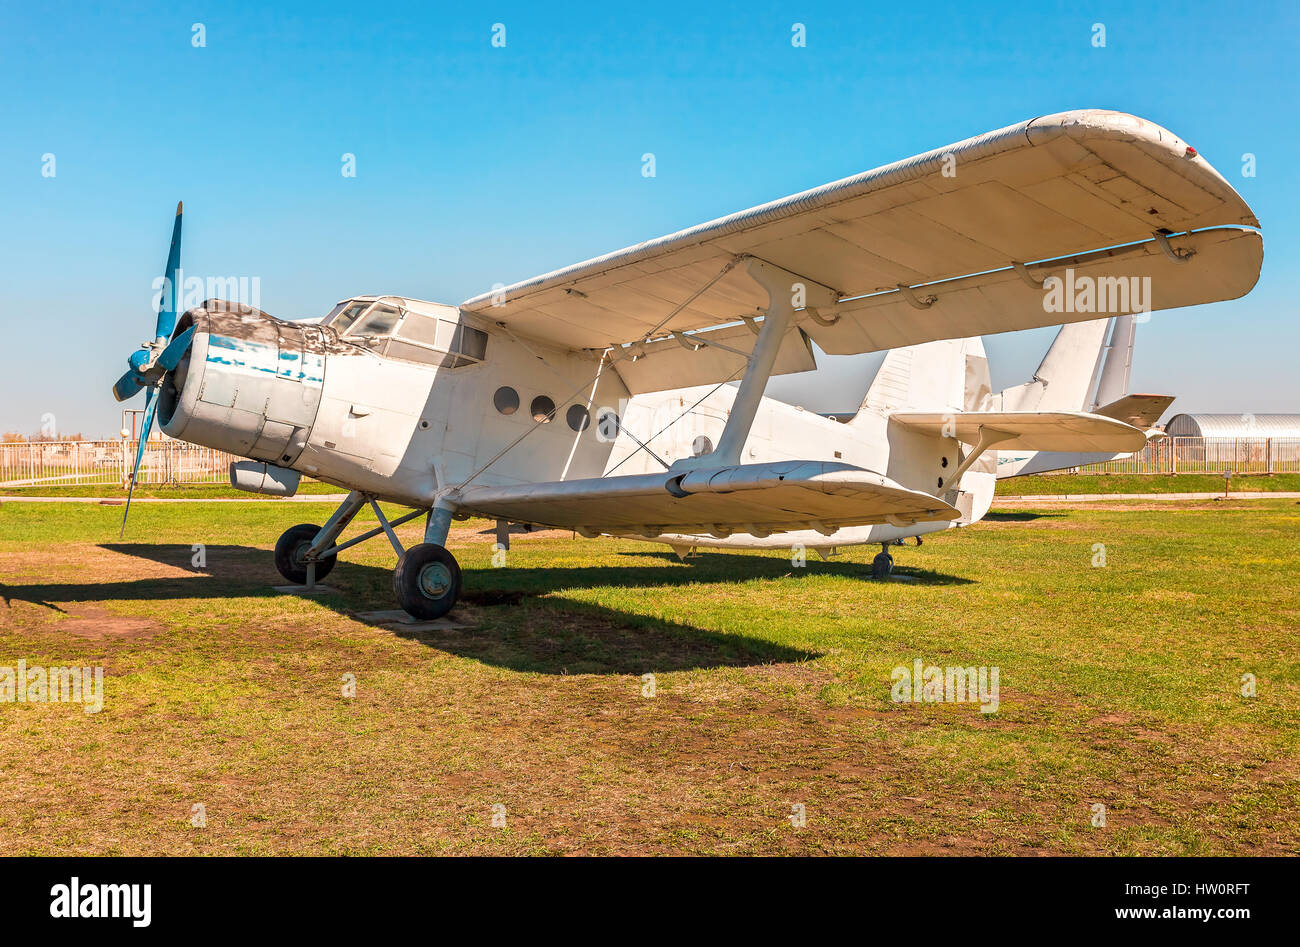 TOGLIATTI, RUSSIA - MAY 3, 2013: The Antonov An-2 is a Soviet mass-produced single-engine biplane at an field aerodrome Stock Photo